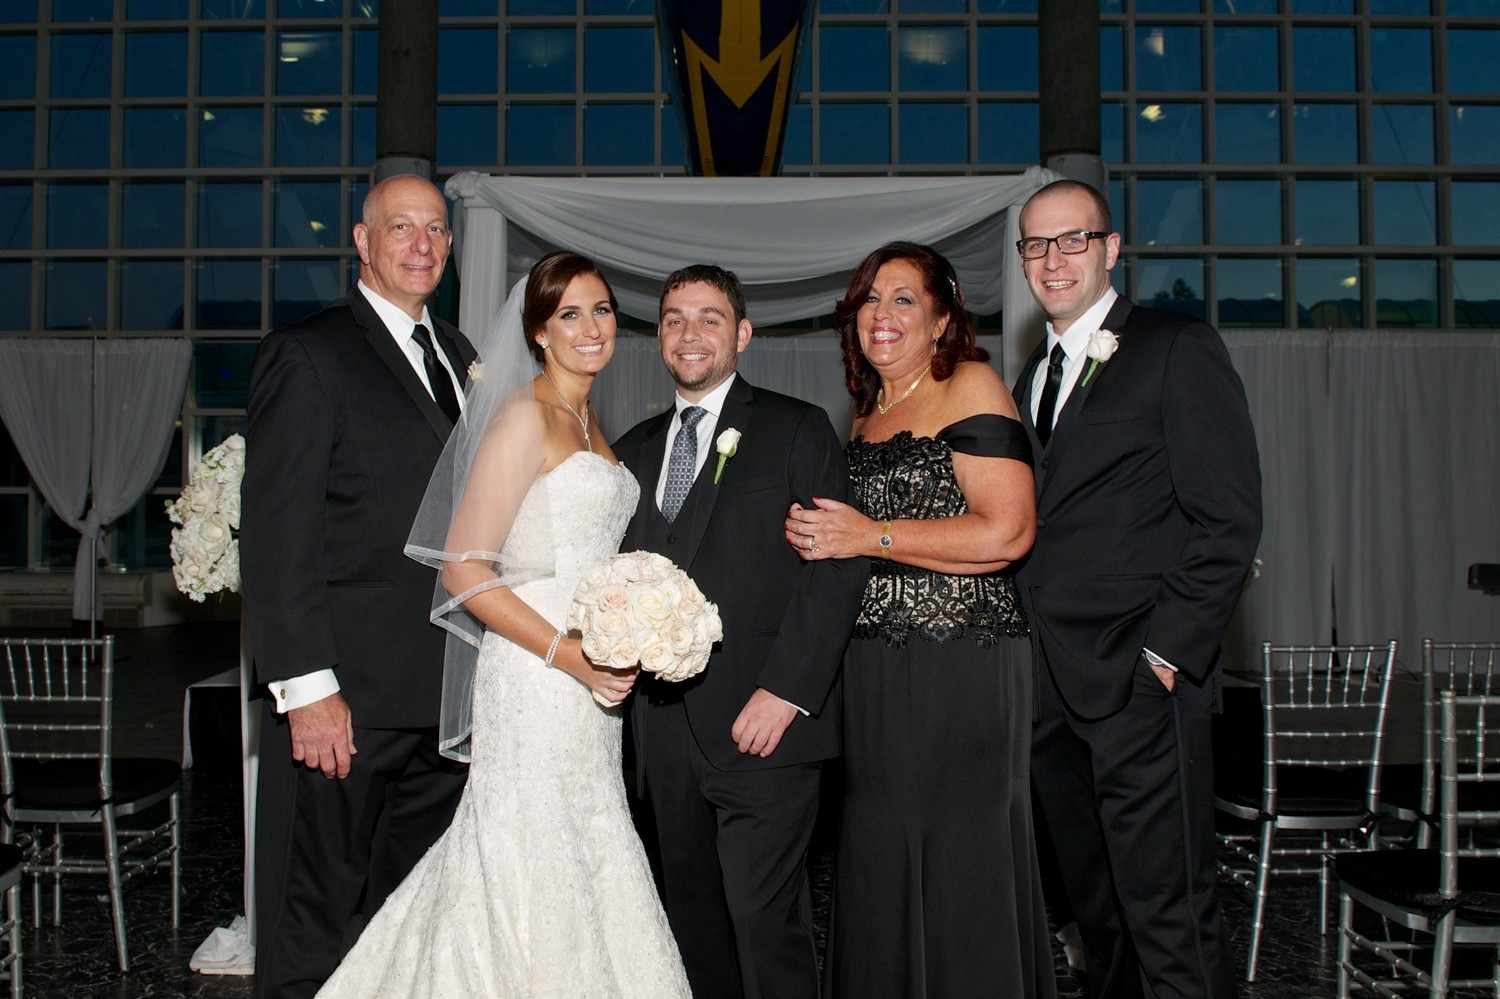 Ed Oppenheimer, left, with his daughter, Sarah, and her husband, Brad Biel; his wife, Ethel; and his son, Andrew, at Sarah's wedding in October 2016.